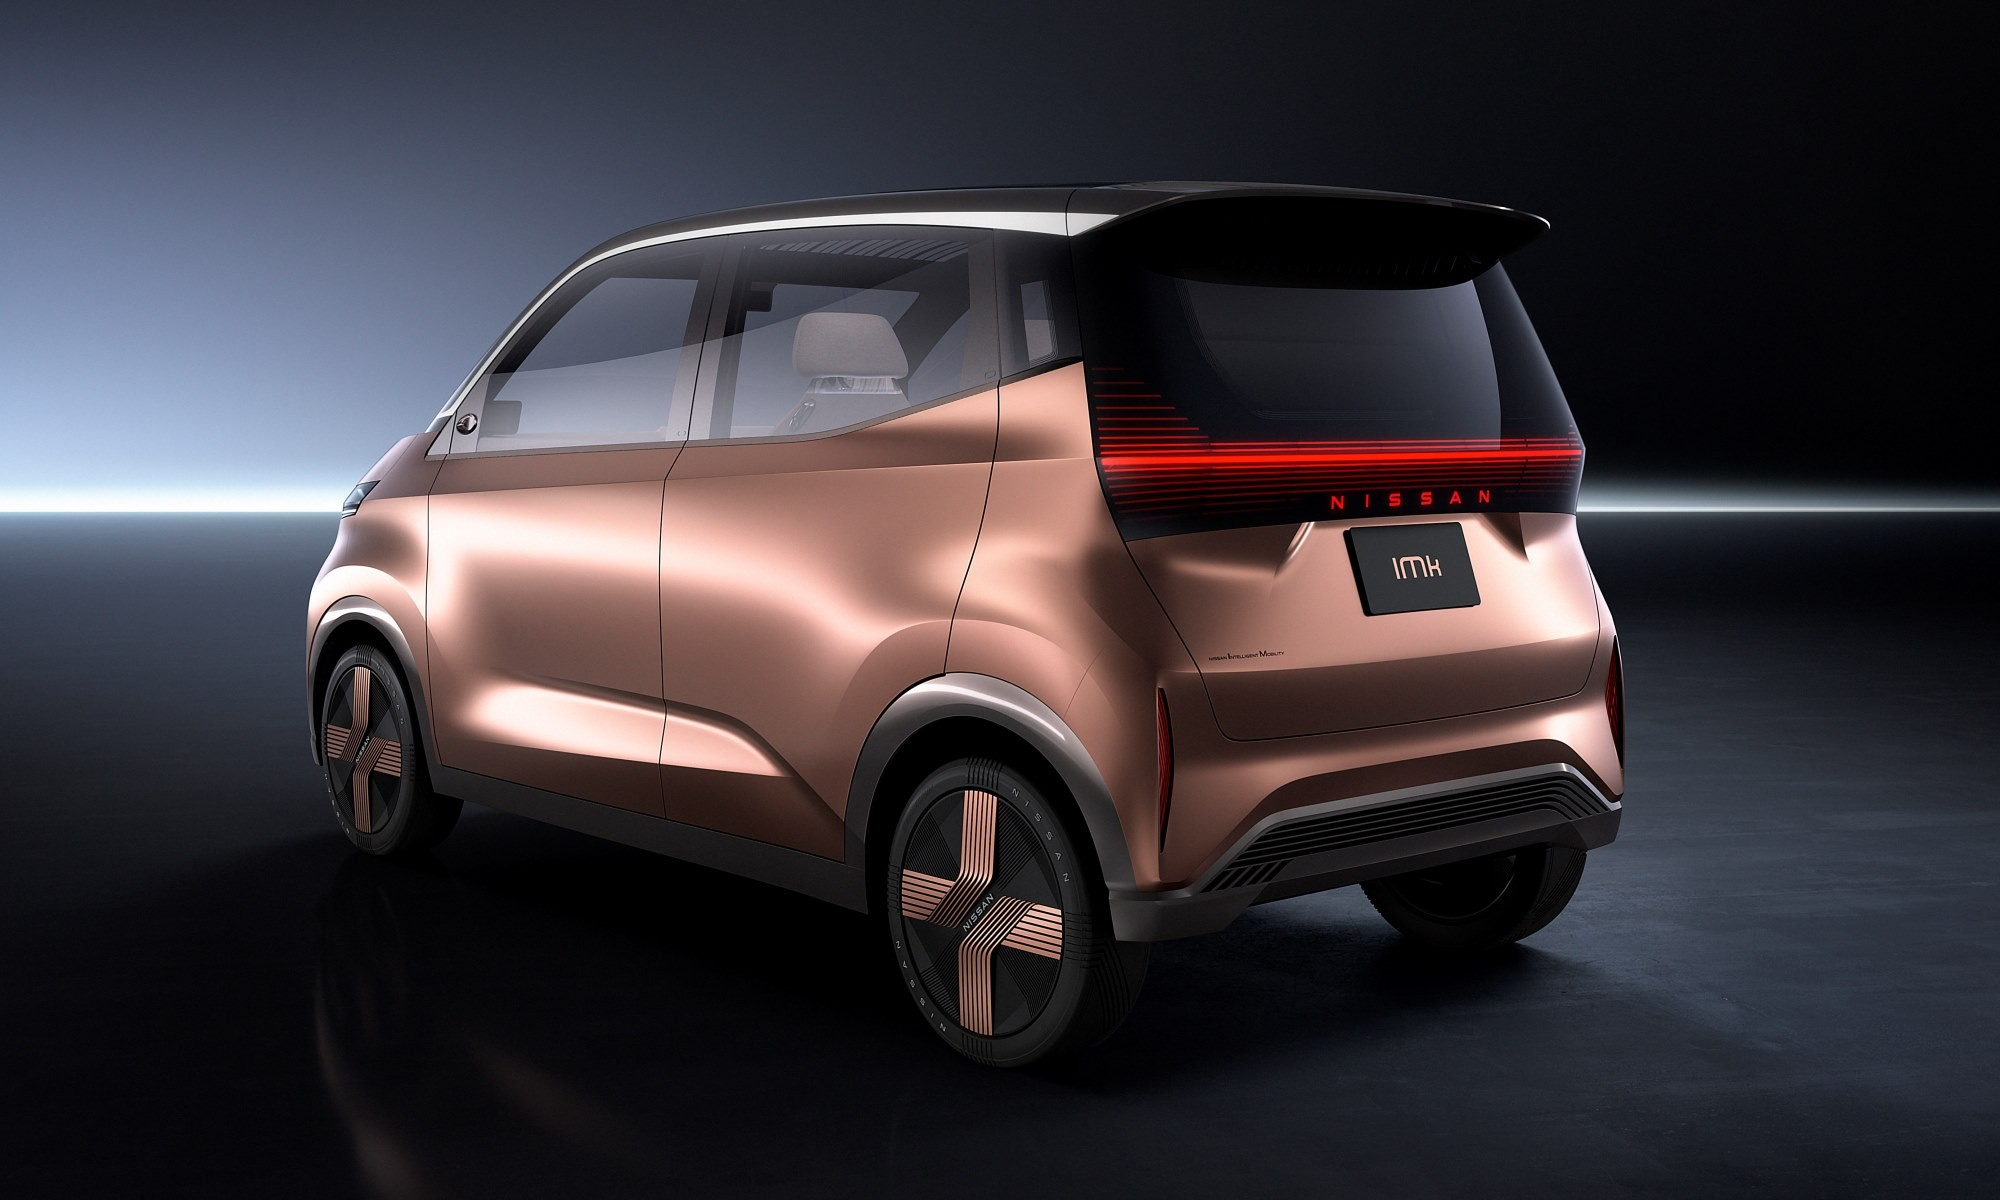 Nissan IMk concept car rear